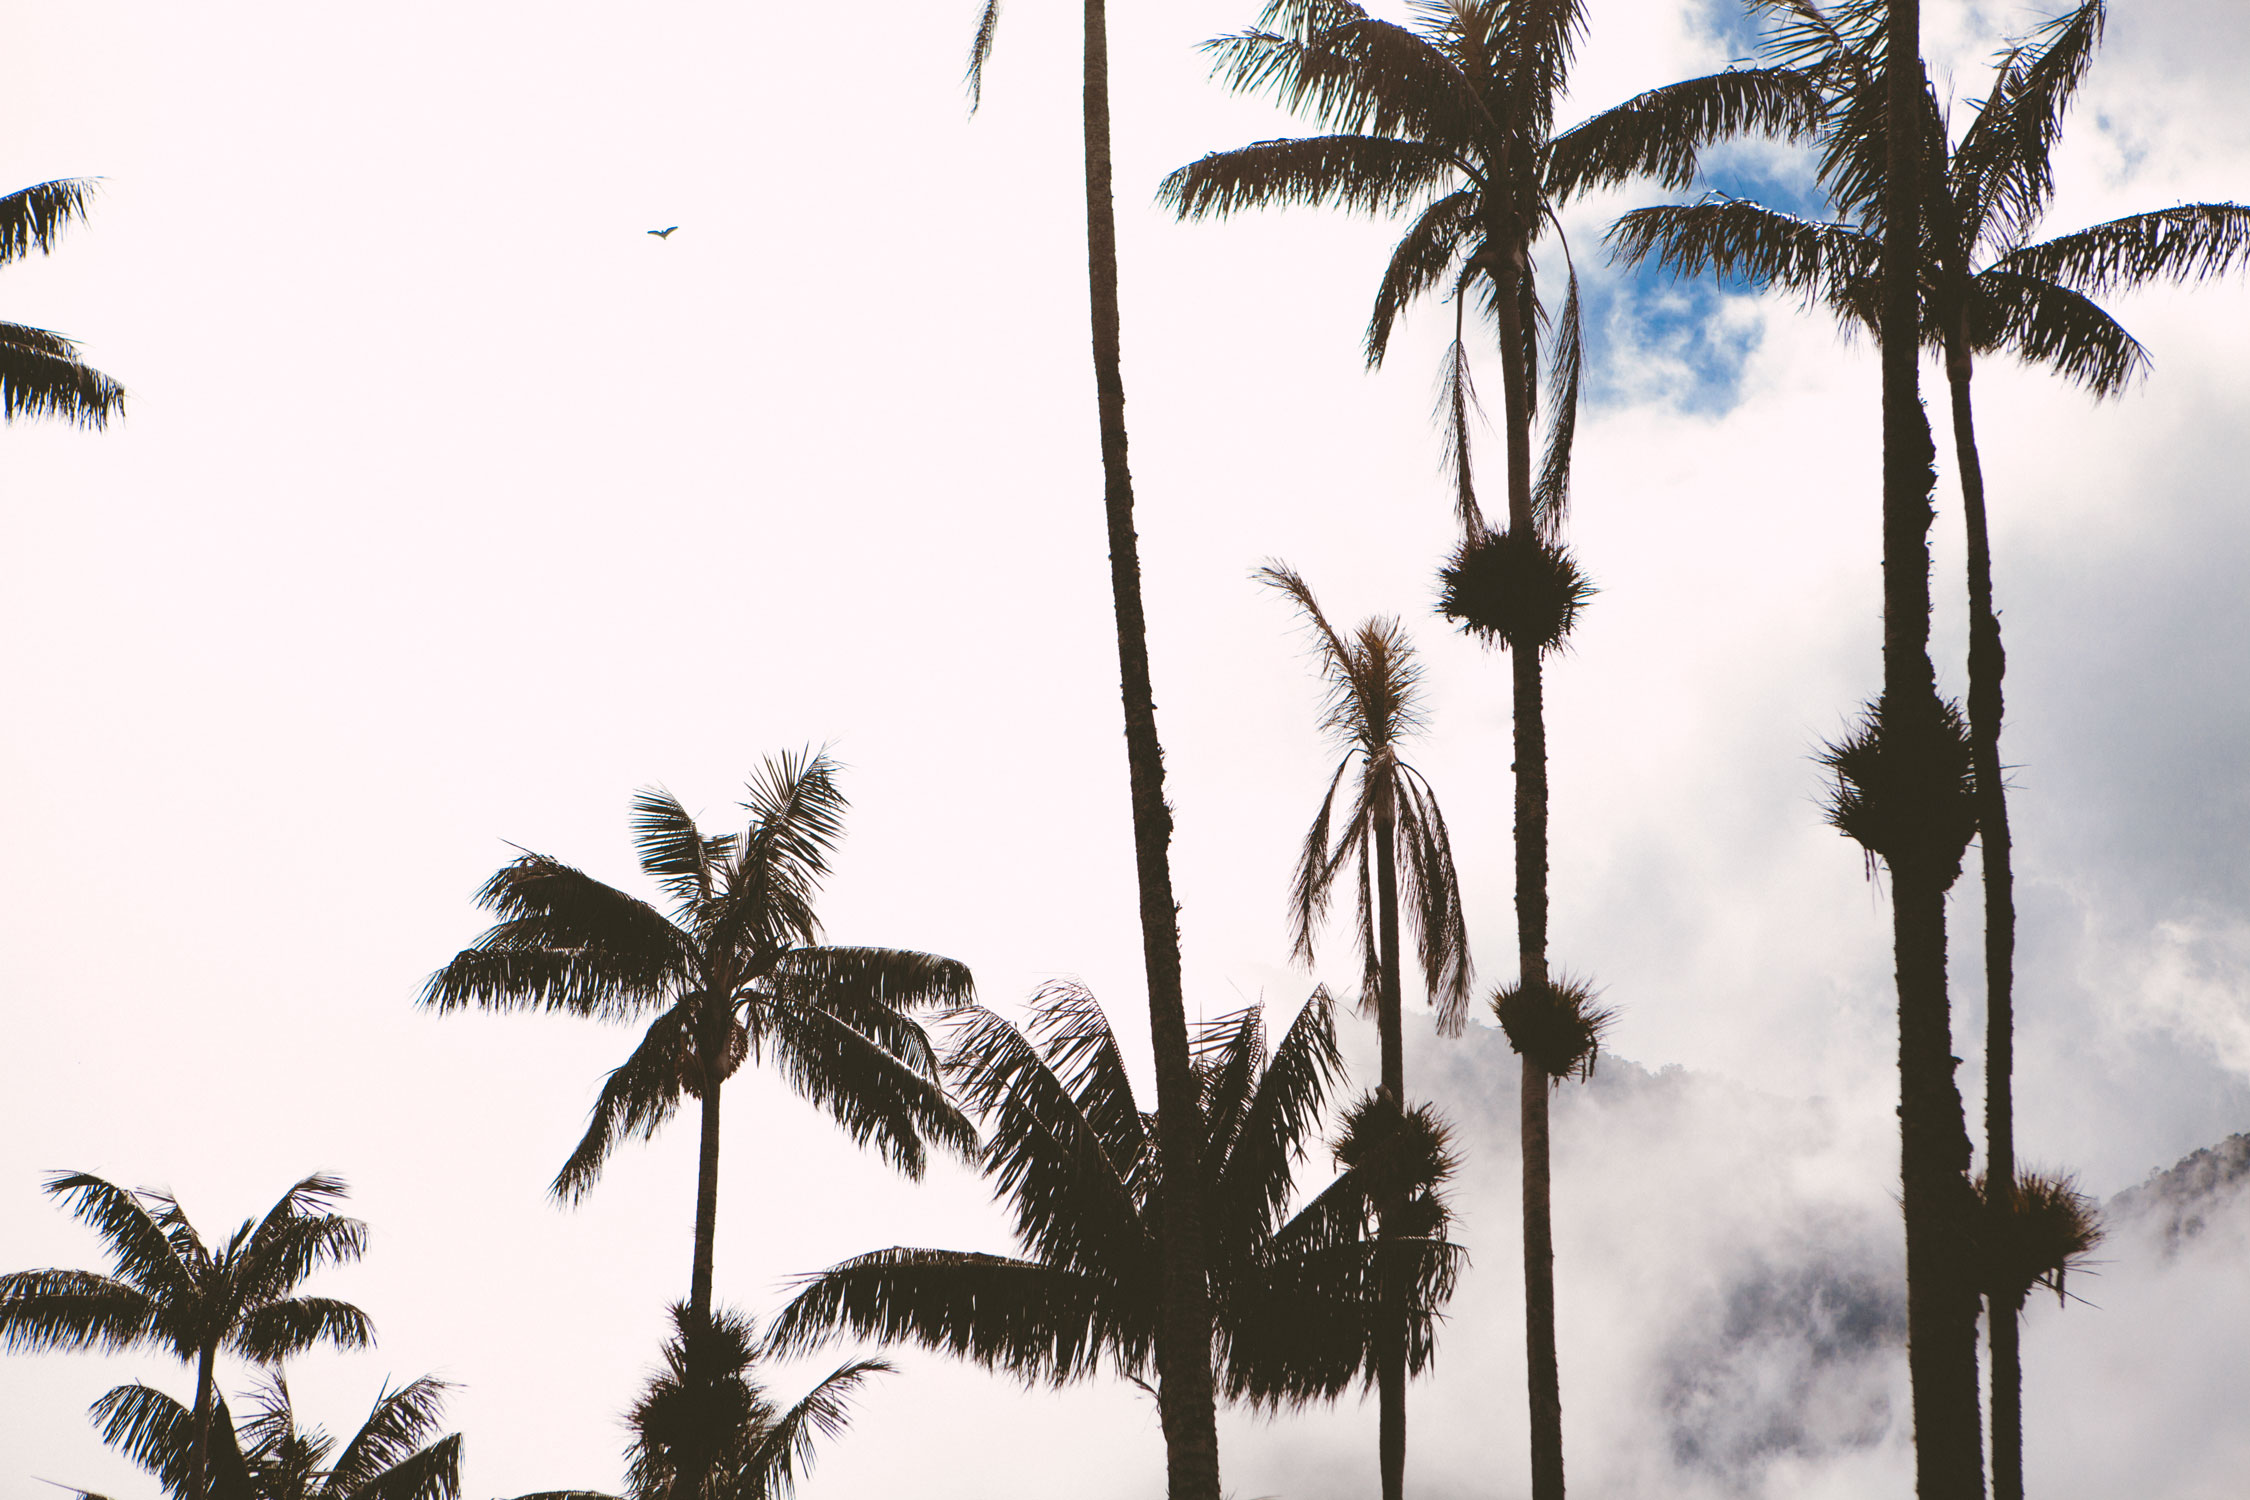 cocora-valley-colombia-wander-south-clouds-wax-palms-1.jpg